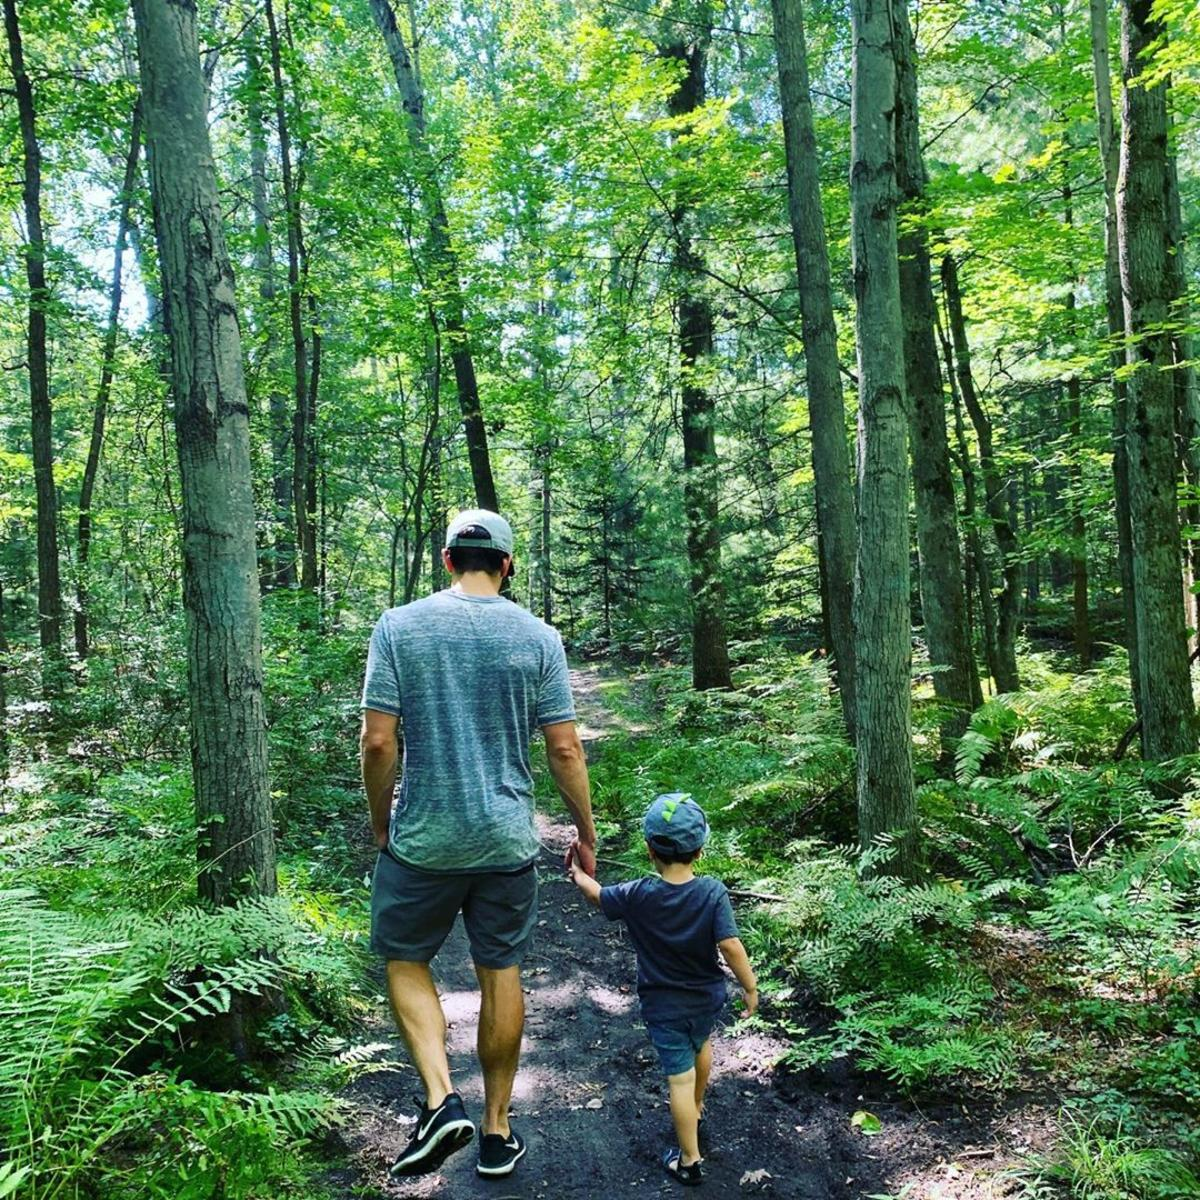 Man and his son walking on a tree-lined path through Midland City Forest